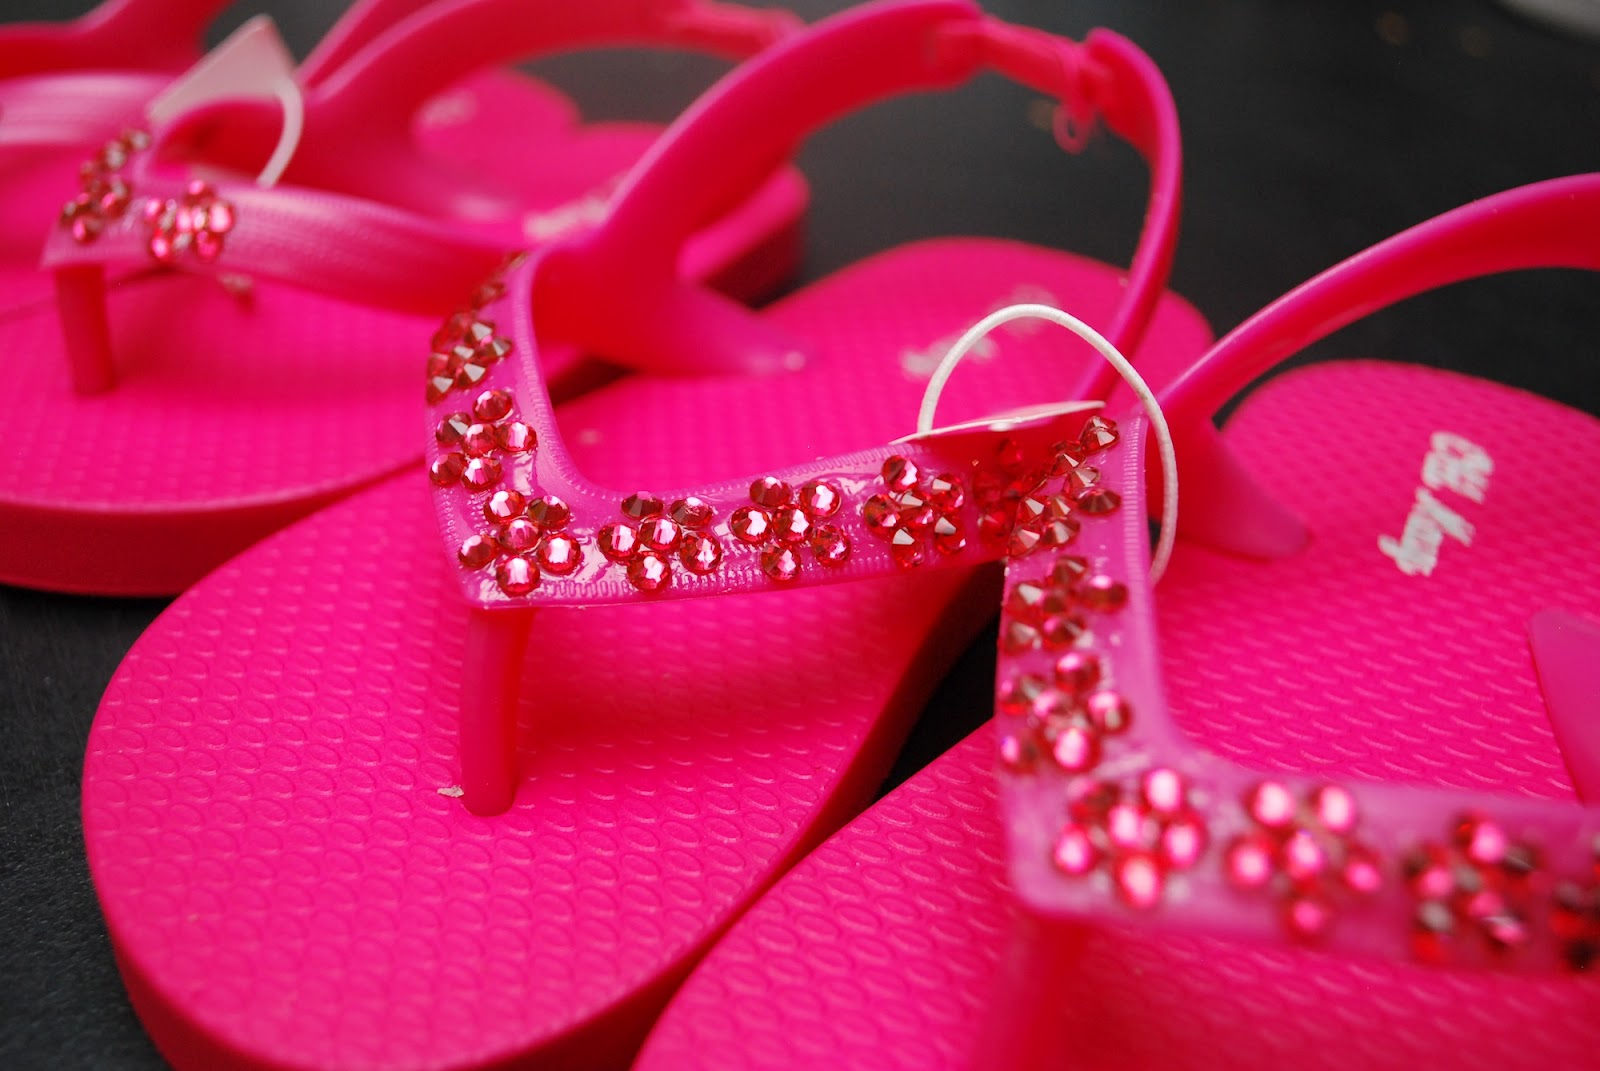 decorating shoes and decor flip clutter ideas classy flop rhinestone quick easy dsc a to way